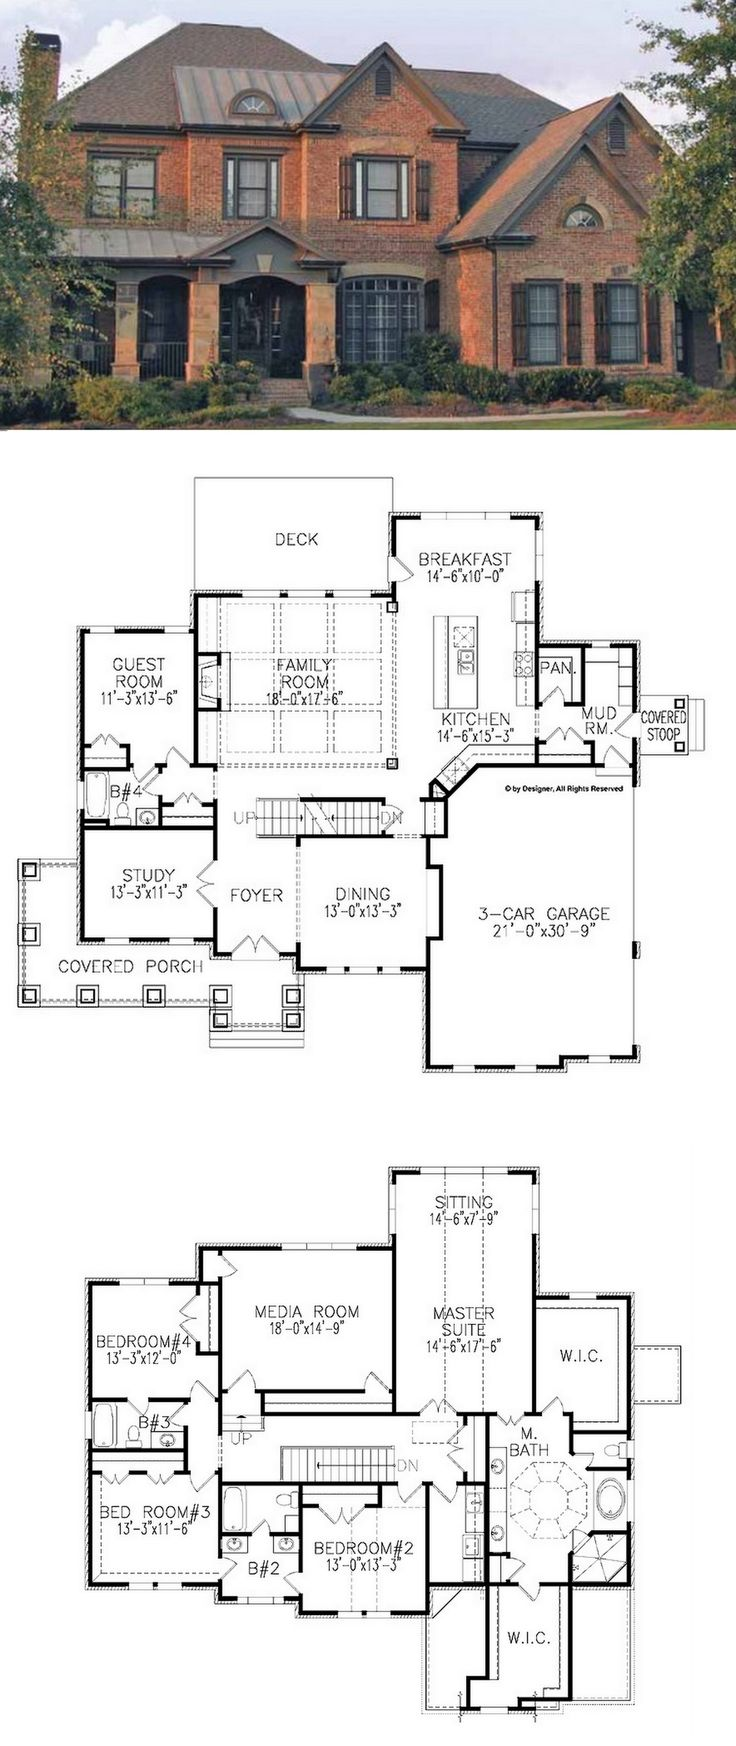 Best 25 floor plans ideas on pinterest house floor Dream house floor plans